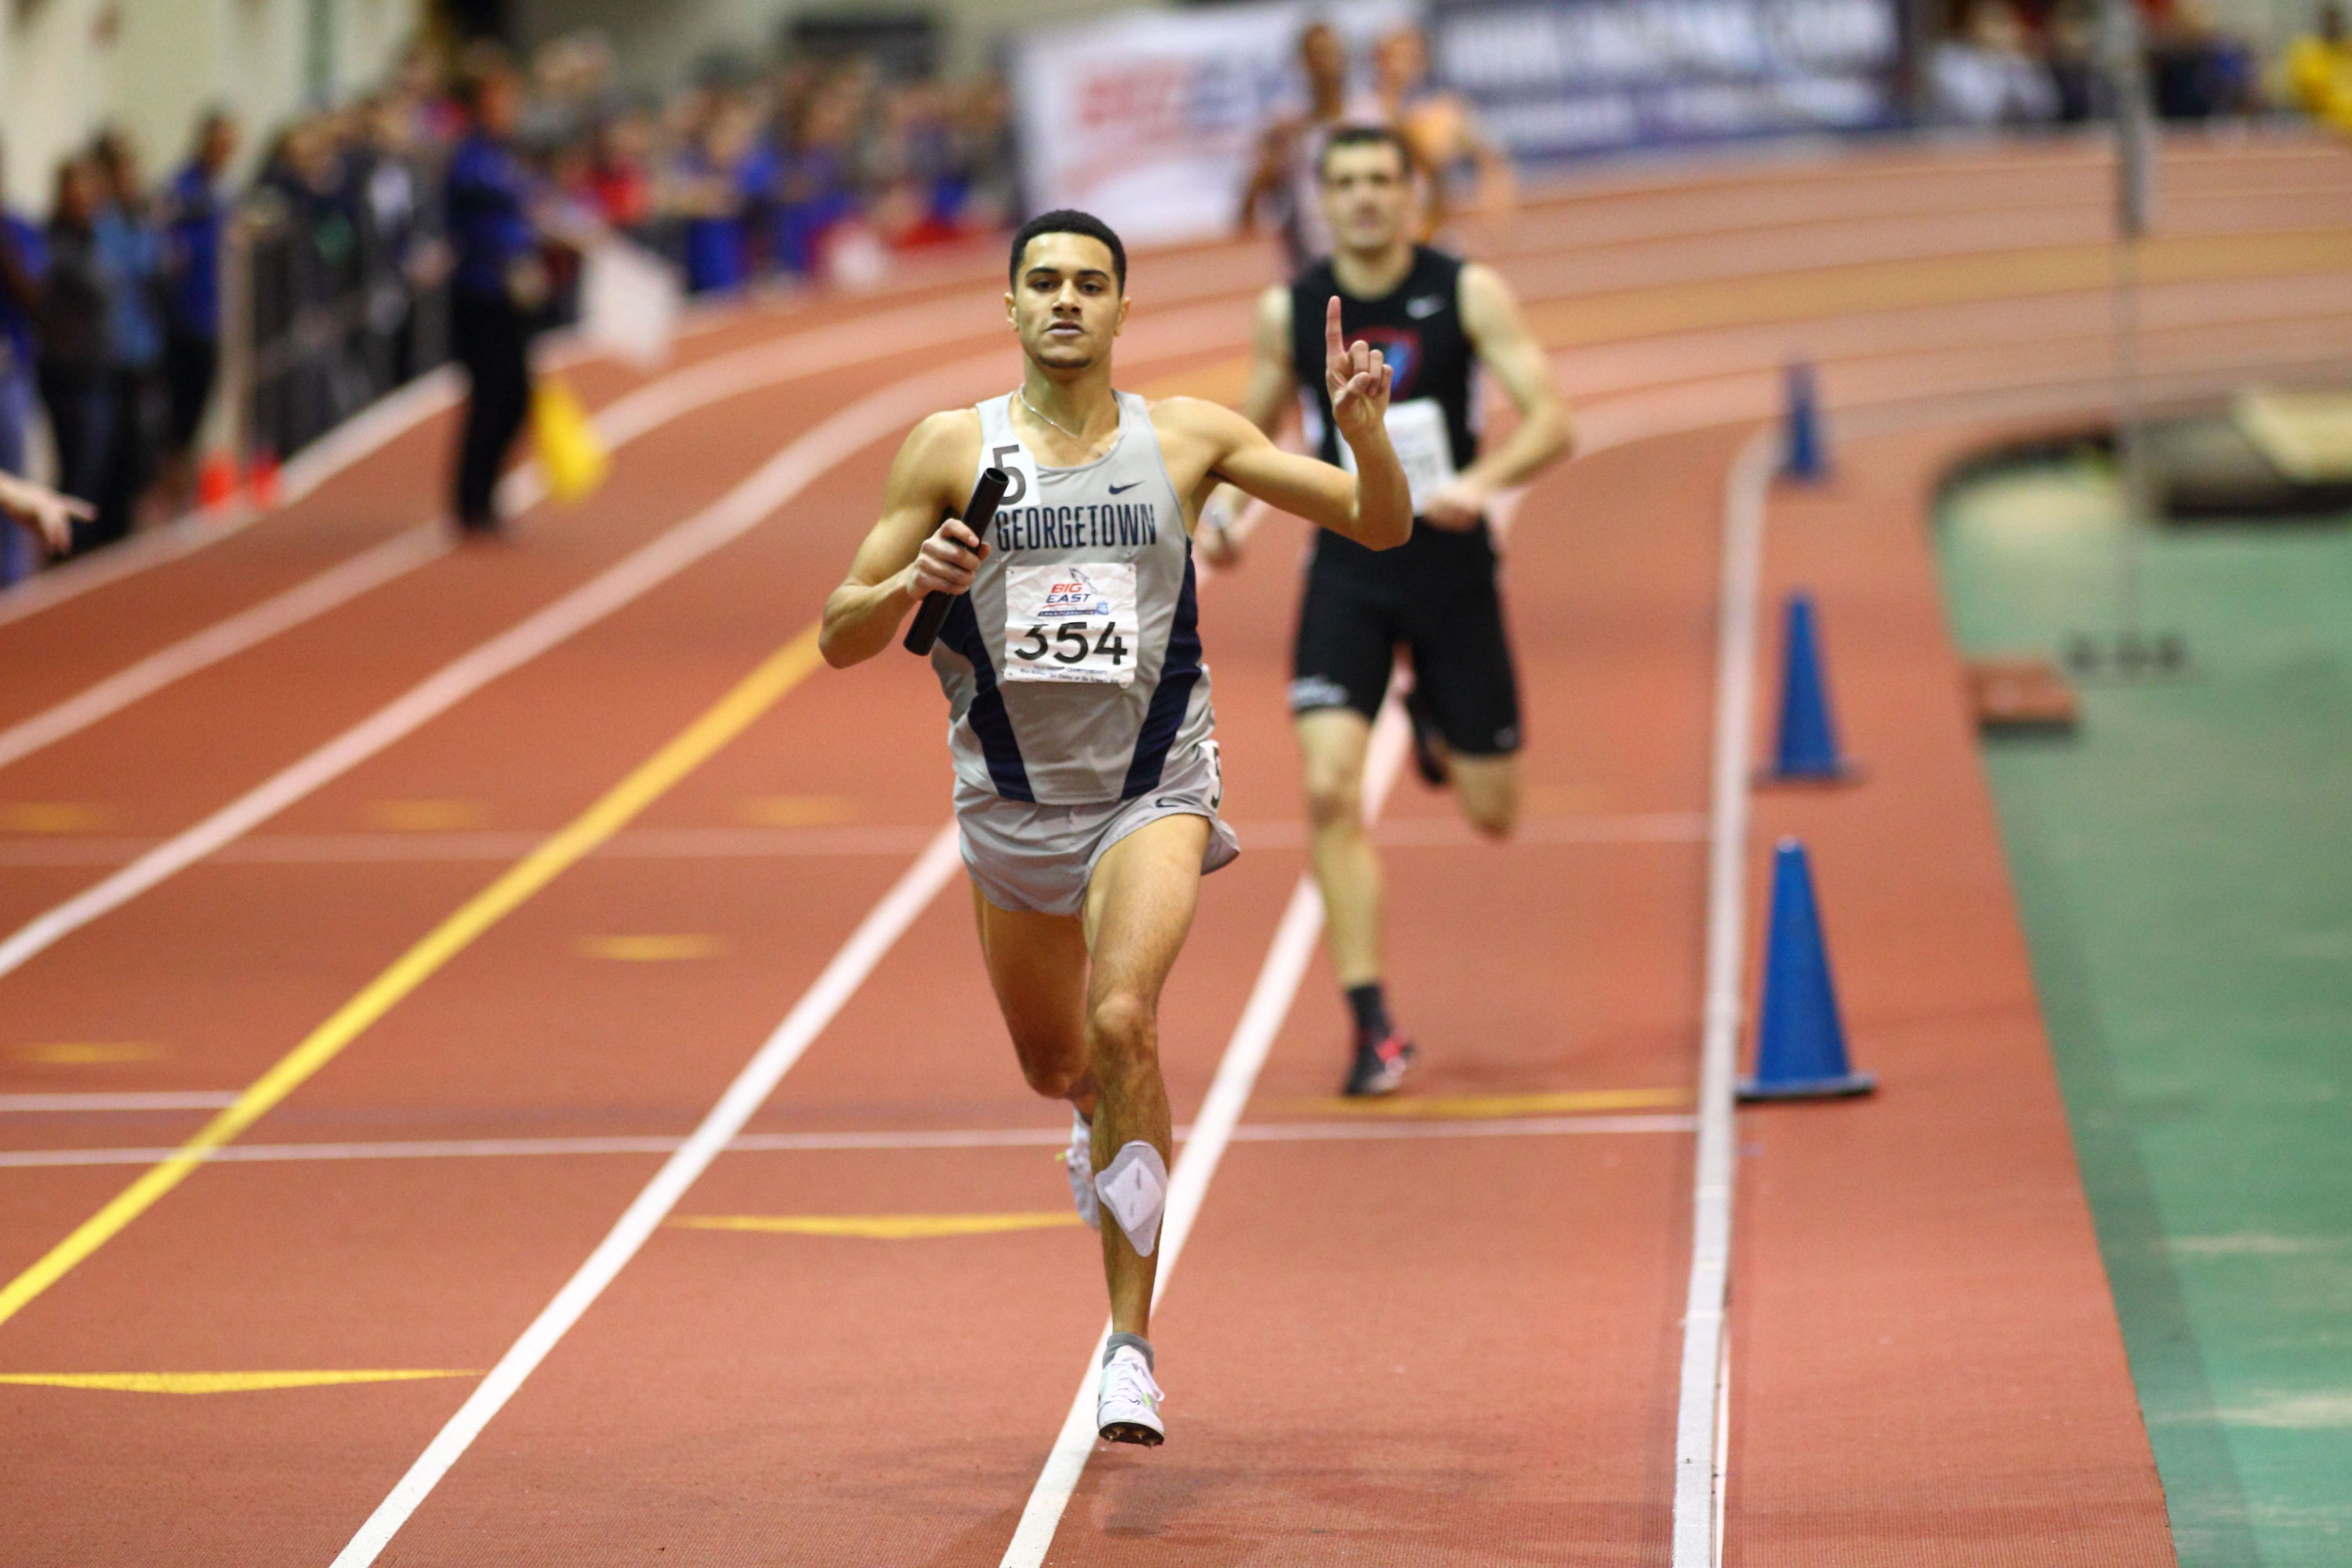 Joe White was named All-BIG EAST in two events (400m, 4x400m relay)